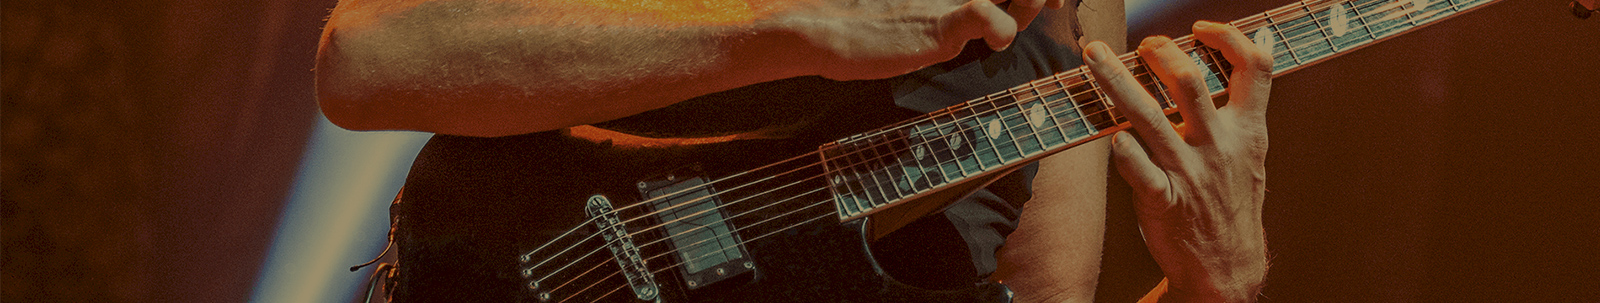 close up of guitar player playing electric guitar with Fluence pickups